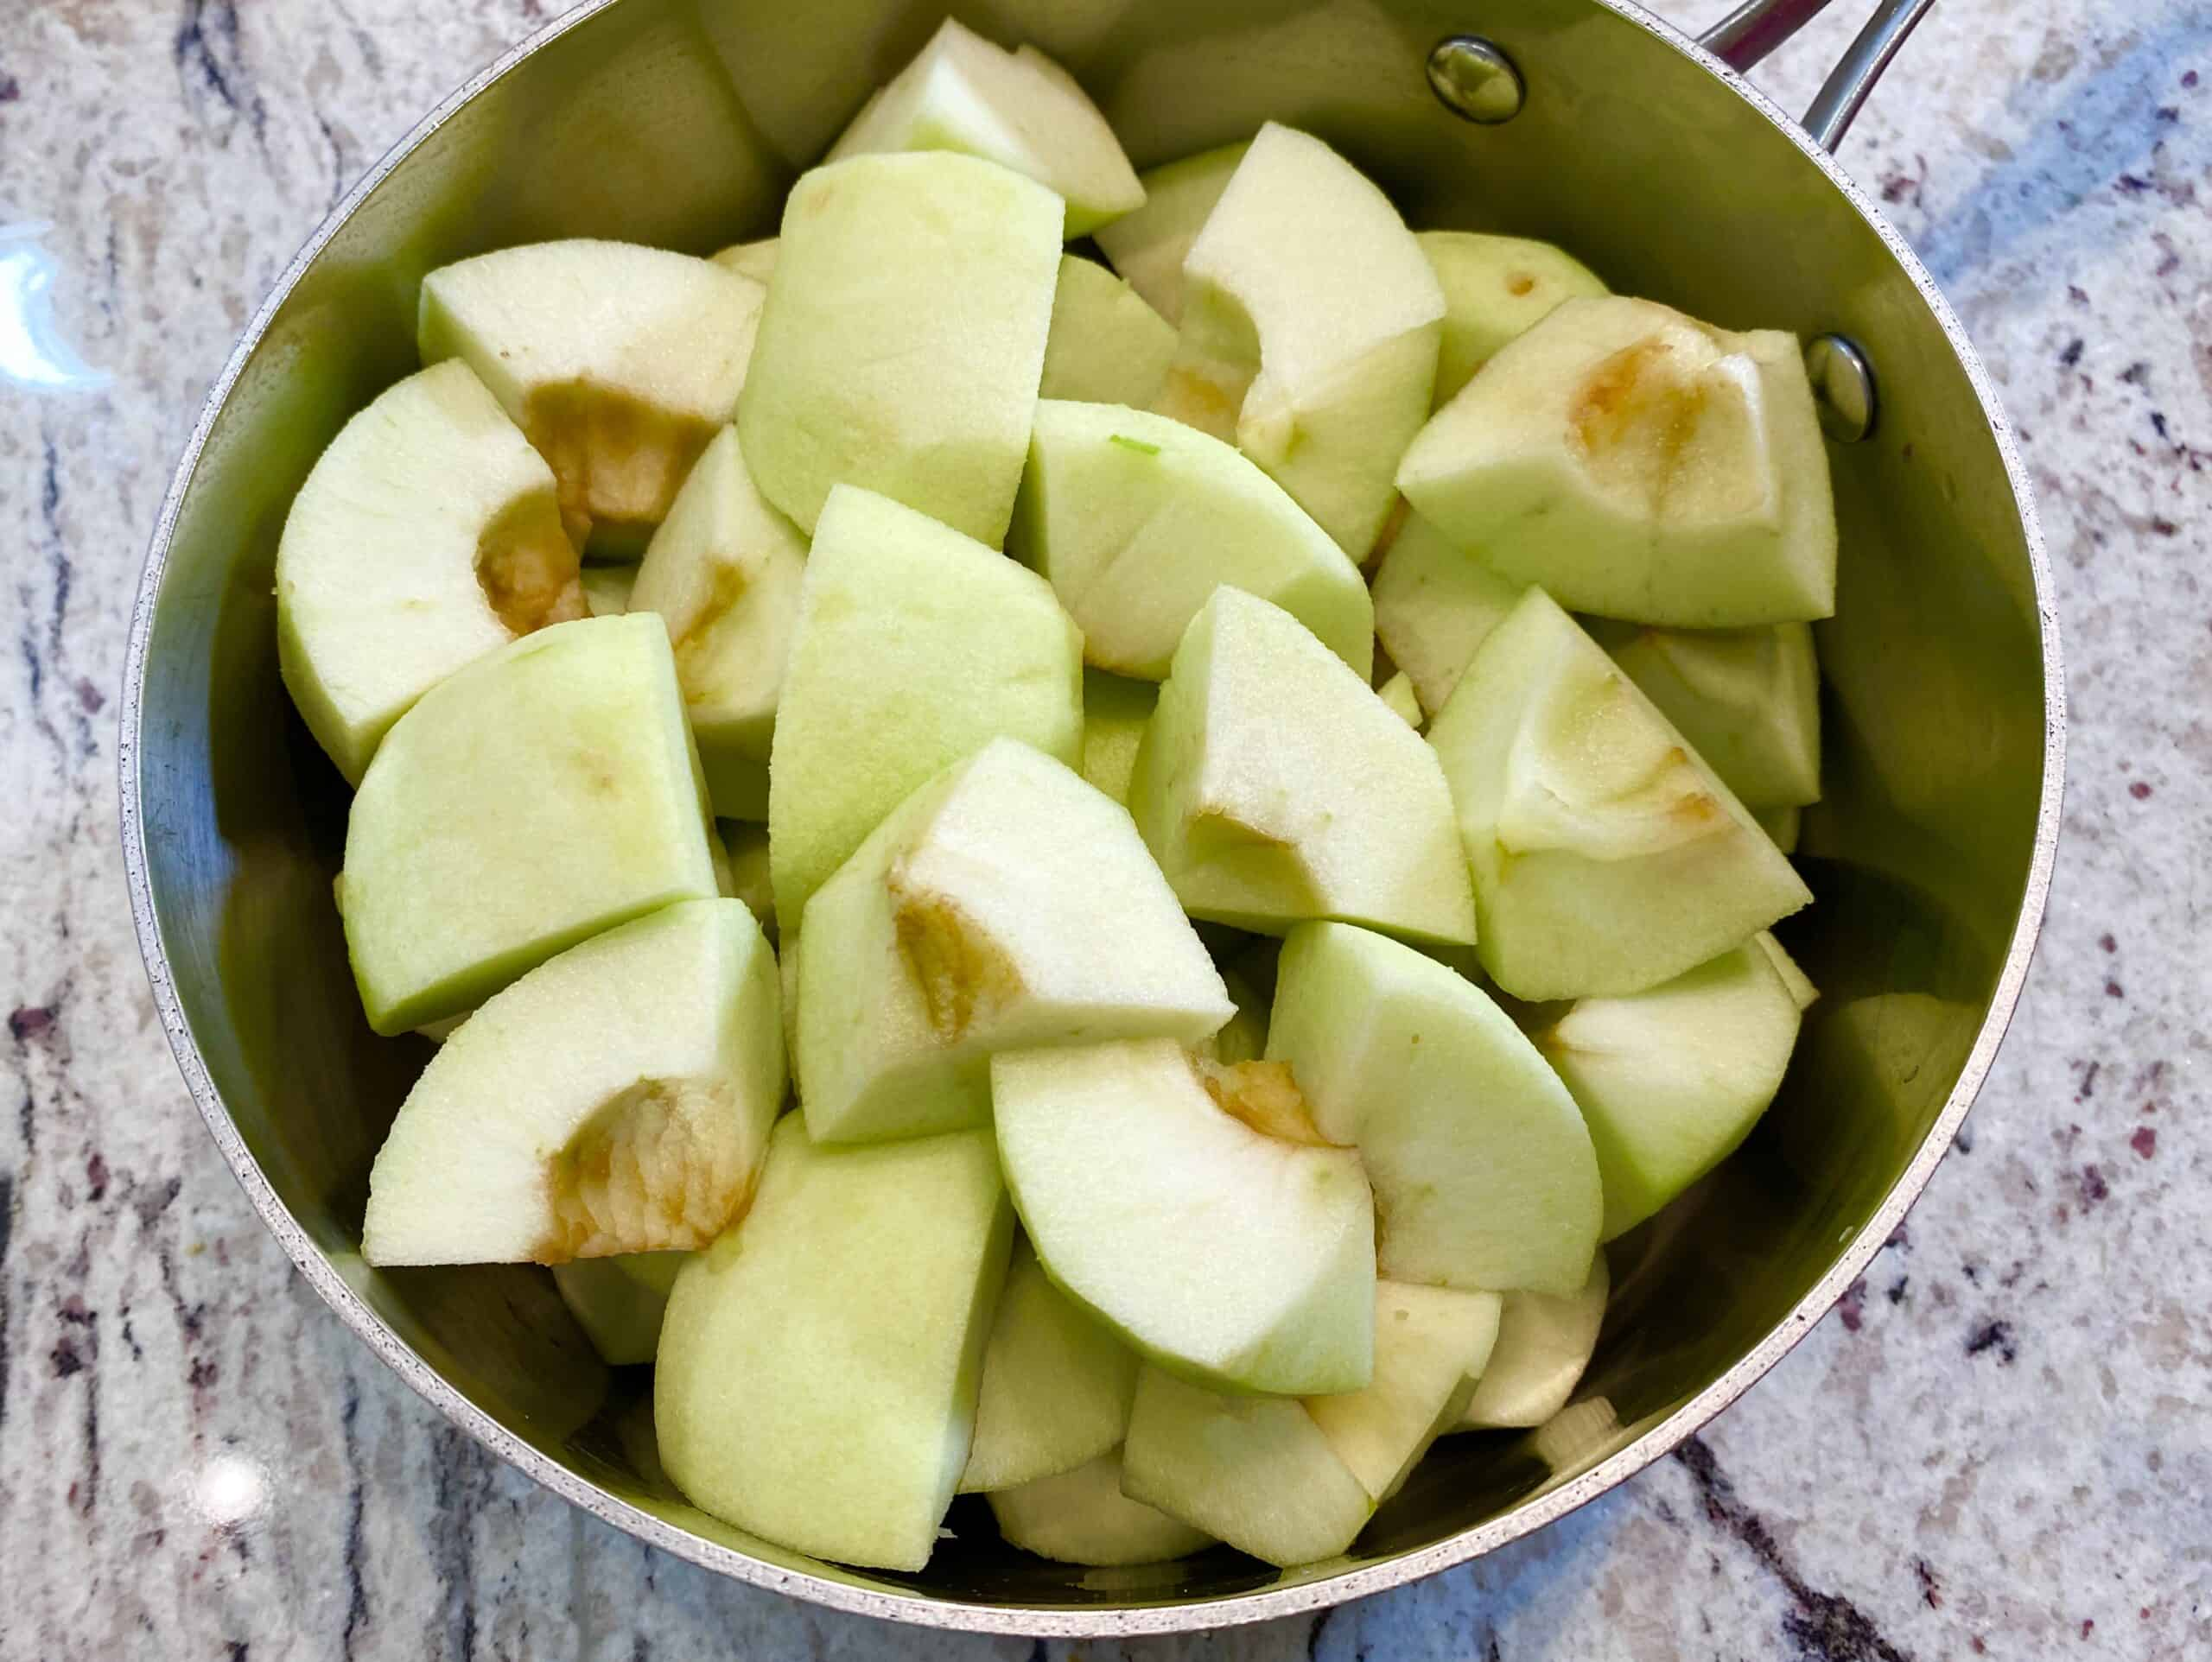 Chopped apples in a saucepan on the kitchen counter.